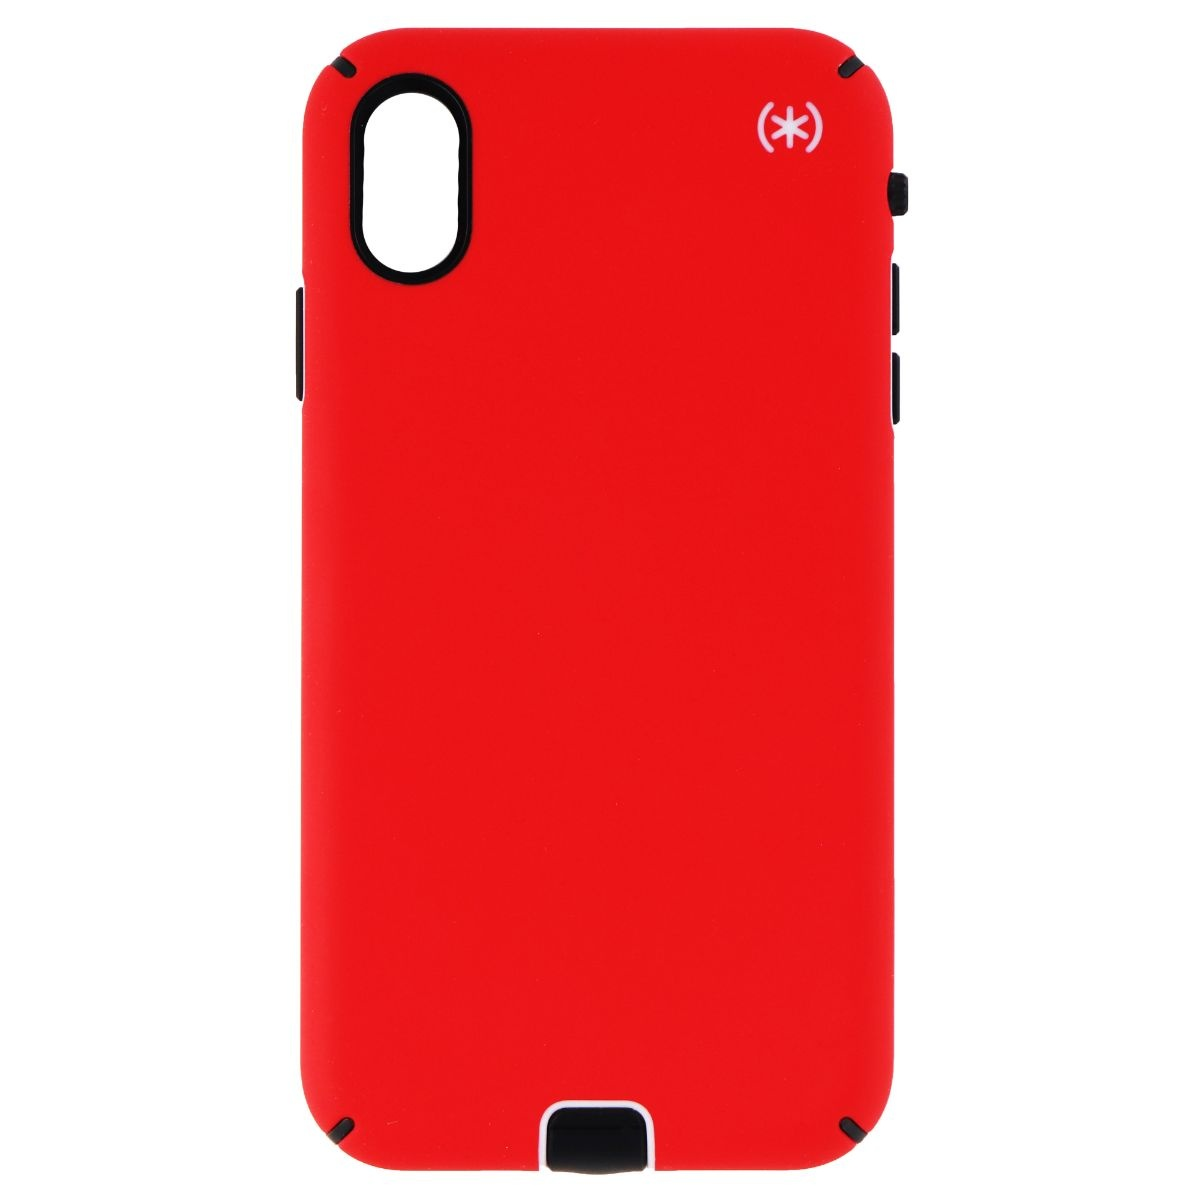 lowest price f6f99 21a30 Speck Presidio Sport Series Case for Apple iPhone XS Max - Matte Red /  Black (Refurbished)